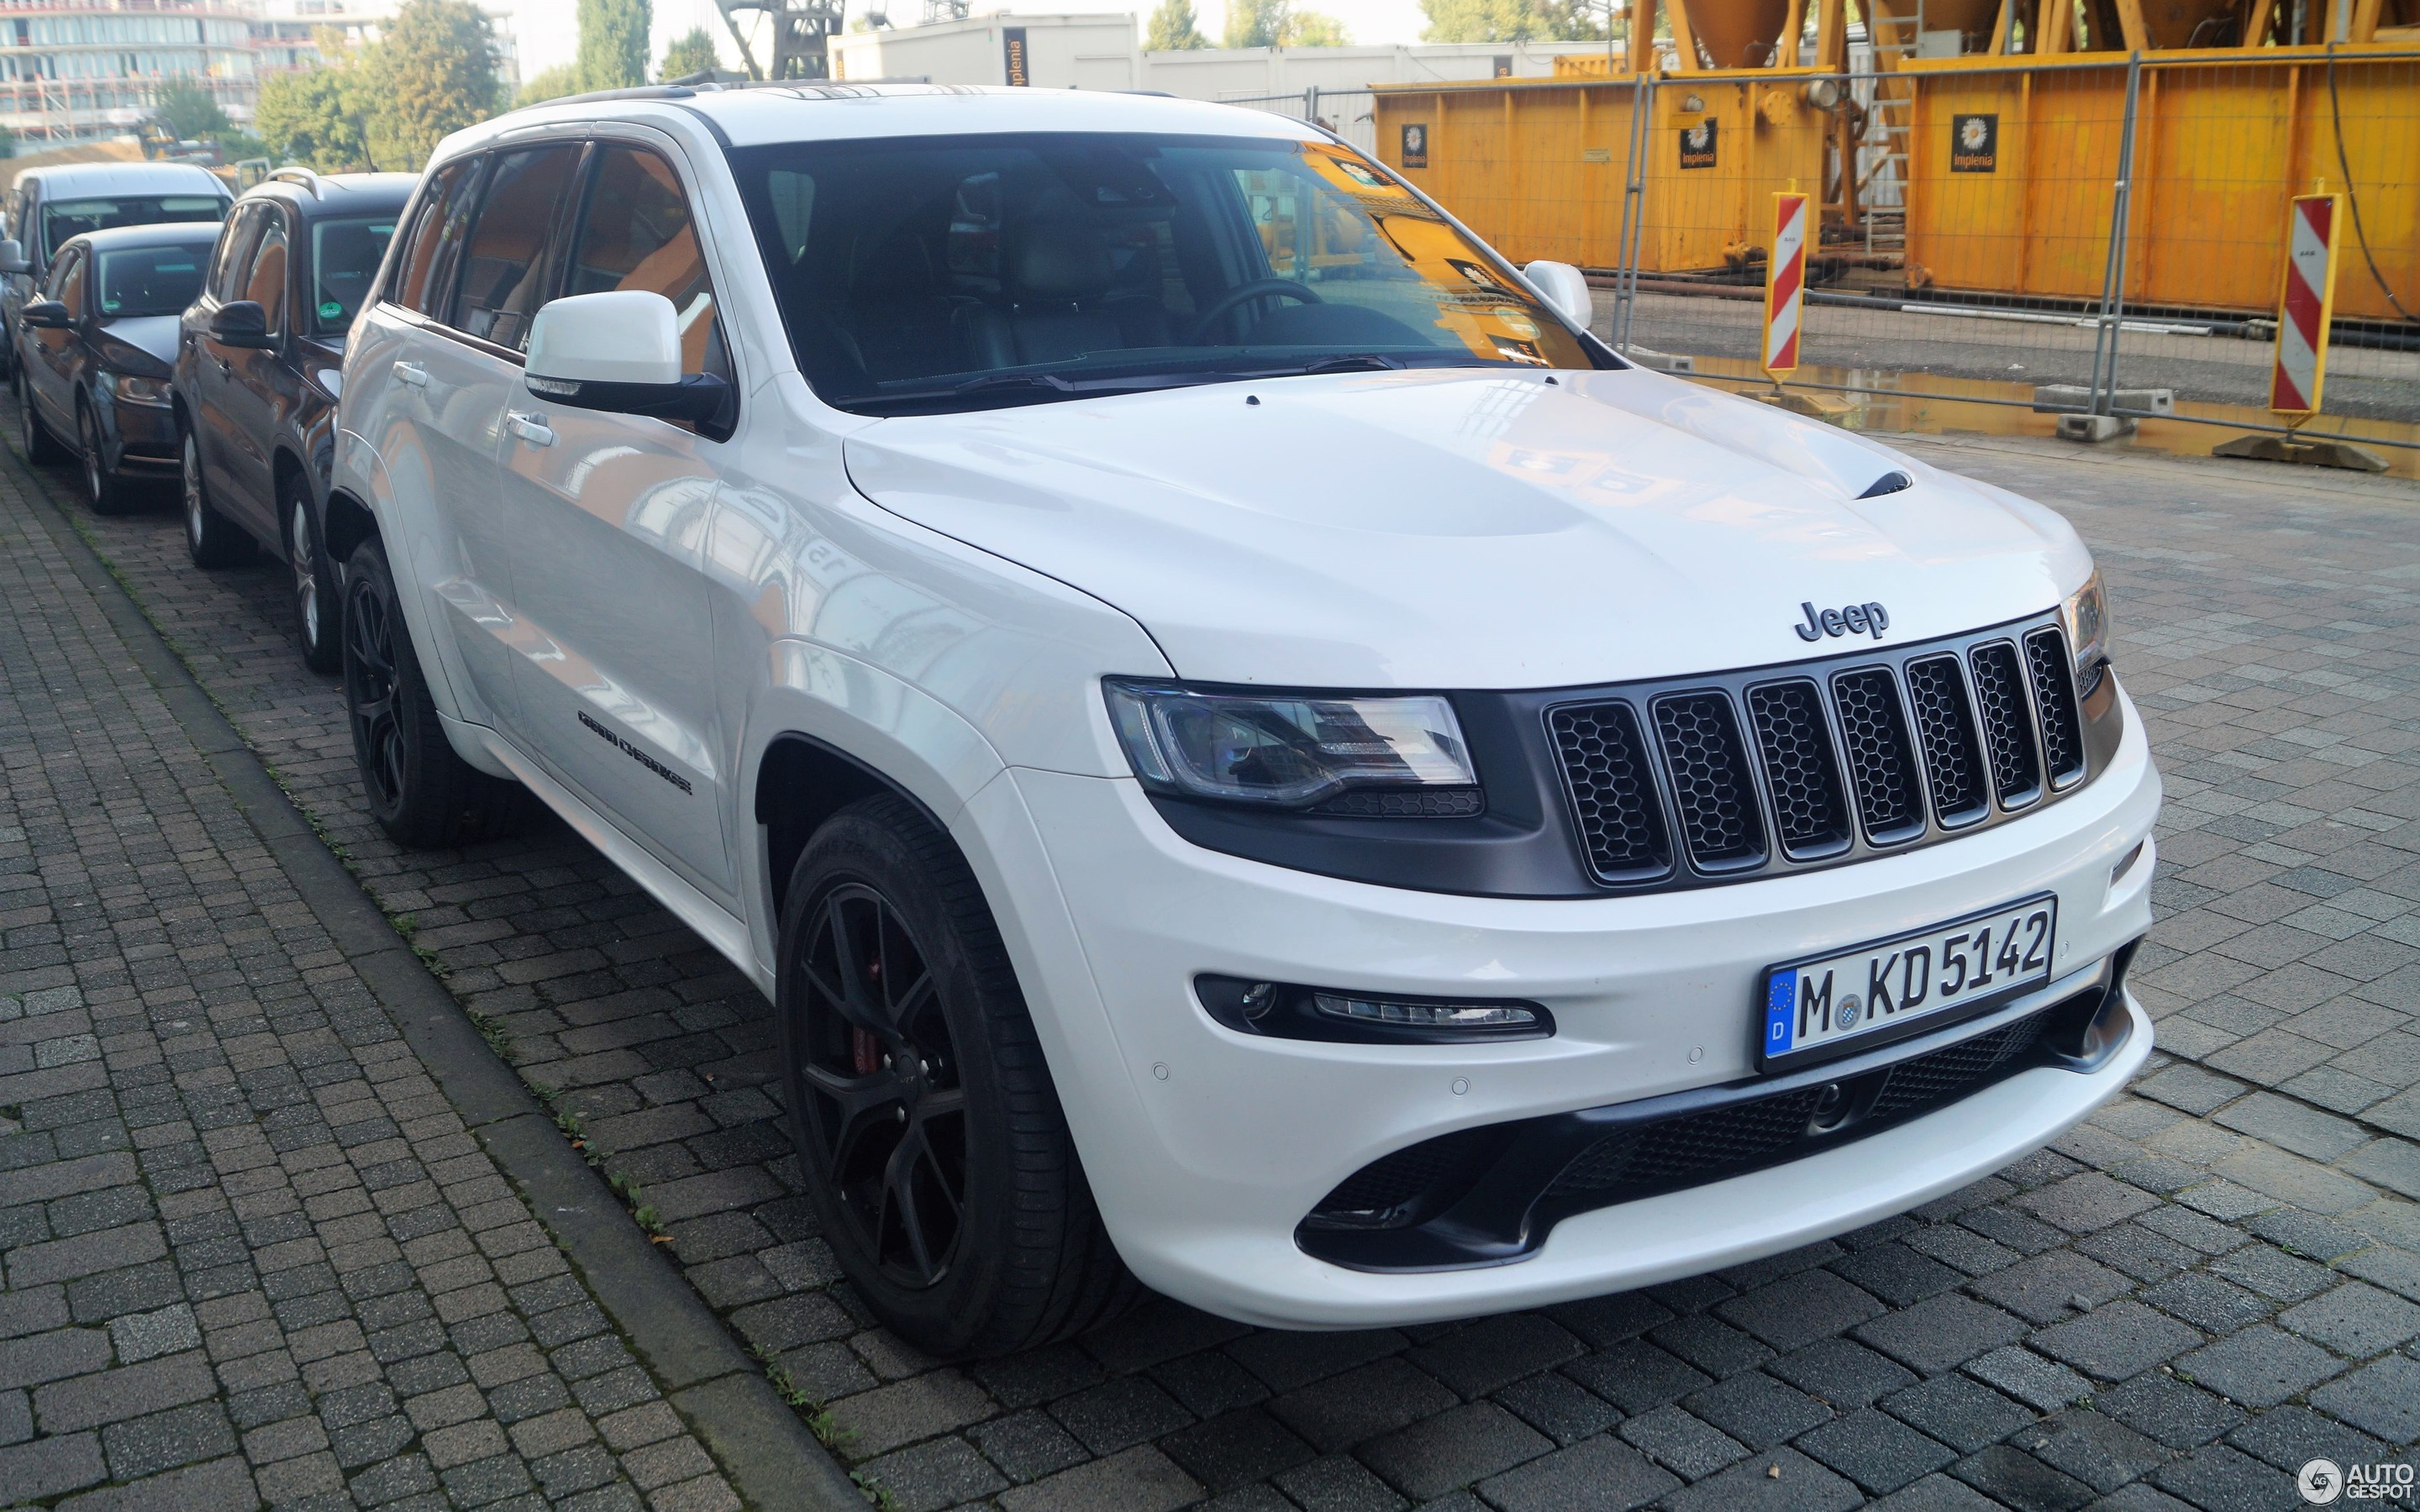 jeep grand cherokee srt 8 2016 night edition 26 november. Black Bedroom Furniture Sets. Home Design Ideas